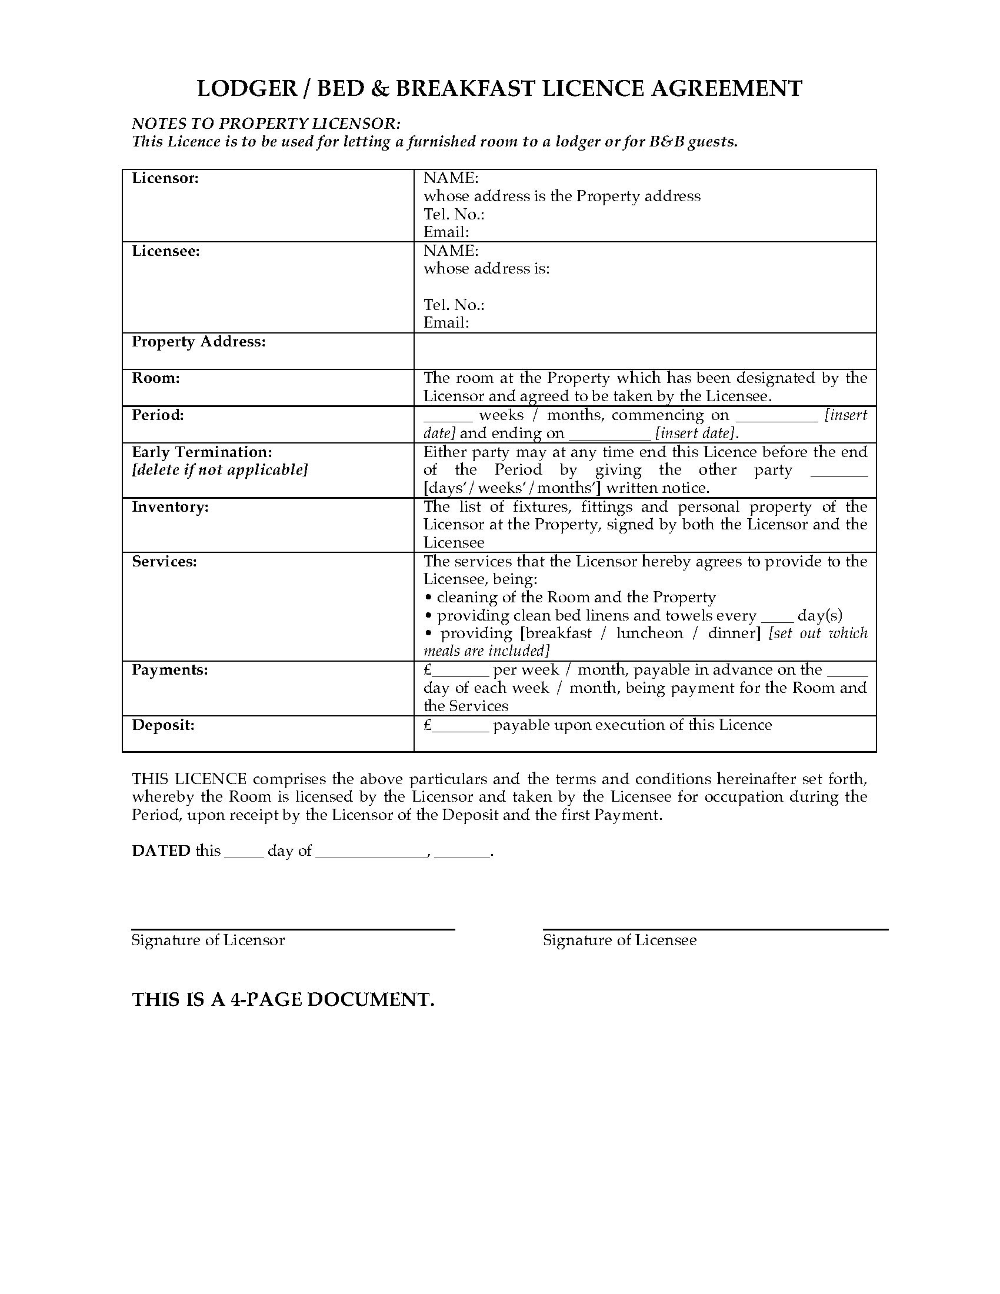 Uk Bed And Breakfast Licence Agreement Legal Forms And Business Regarding Landlord Lodger Agreement Template 10 Profe Being A Landlord Legal Forms Templates